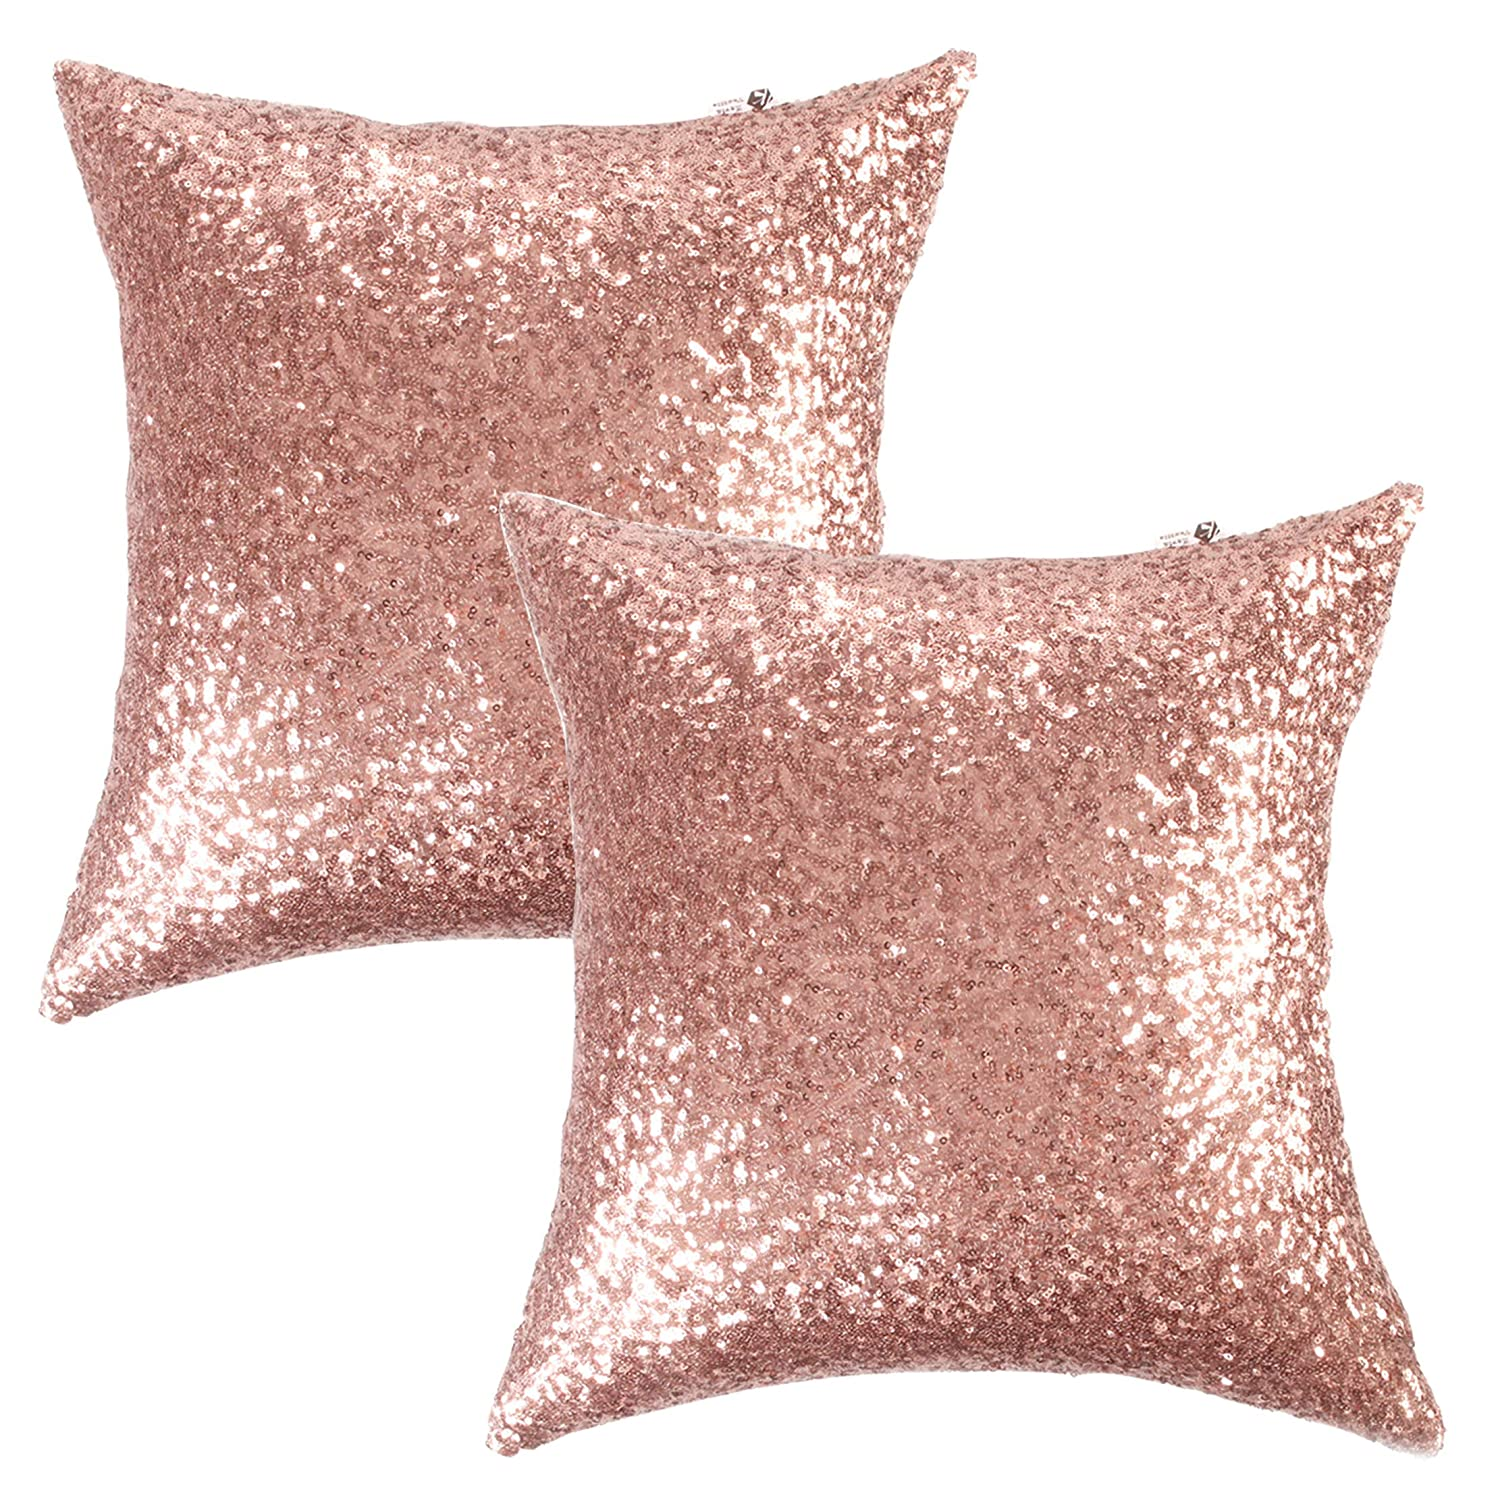 """Kevin Textile Sequins Decorative Luxurious Home Party Square Pillow Case Cushion Cover, 18""""x18"""", Hidden Zipper Design, 2 Cover Packs(Rosegold)"""